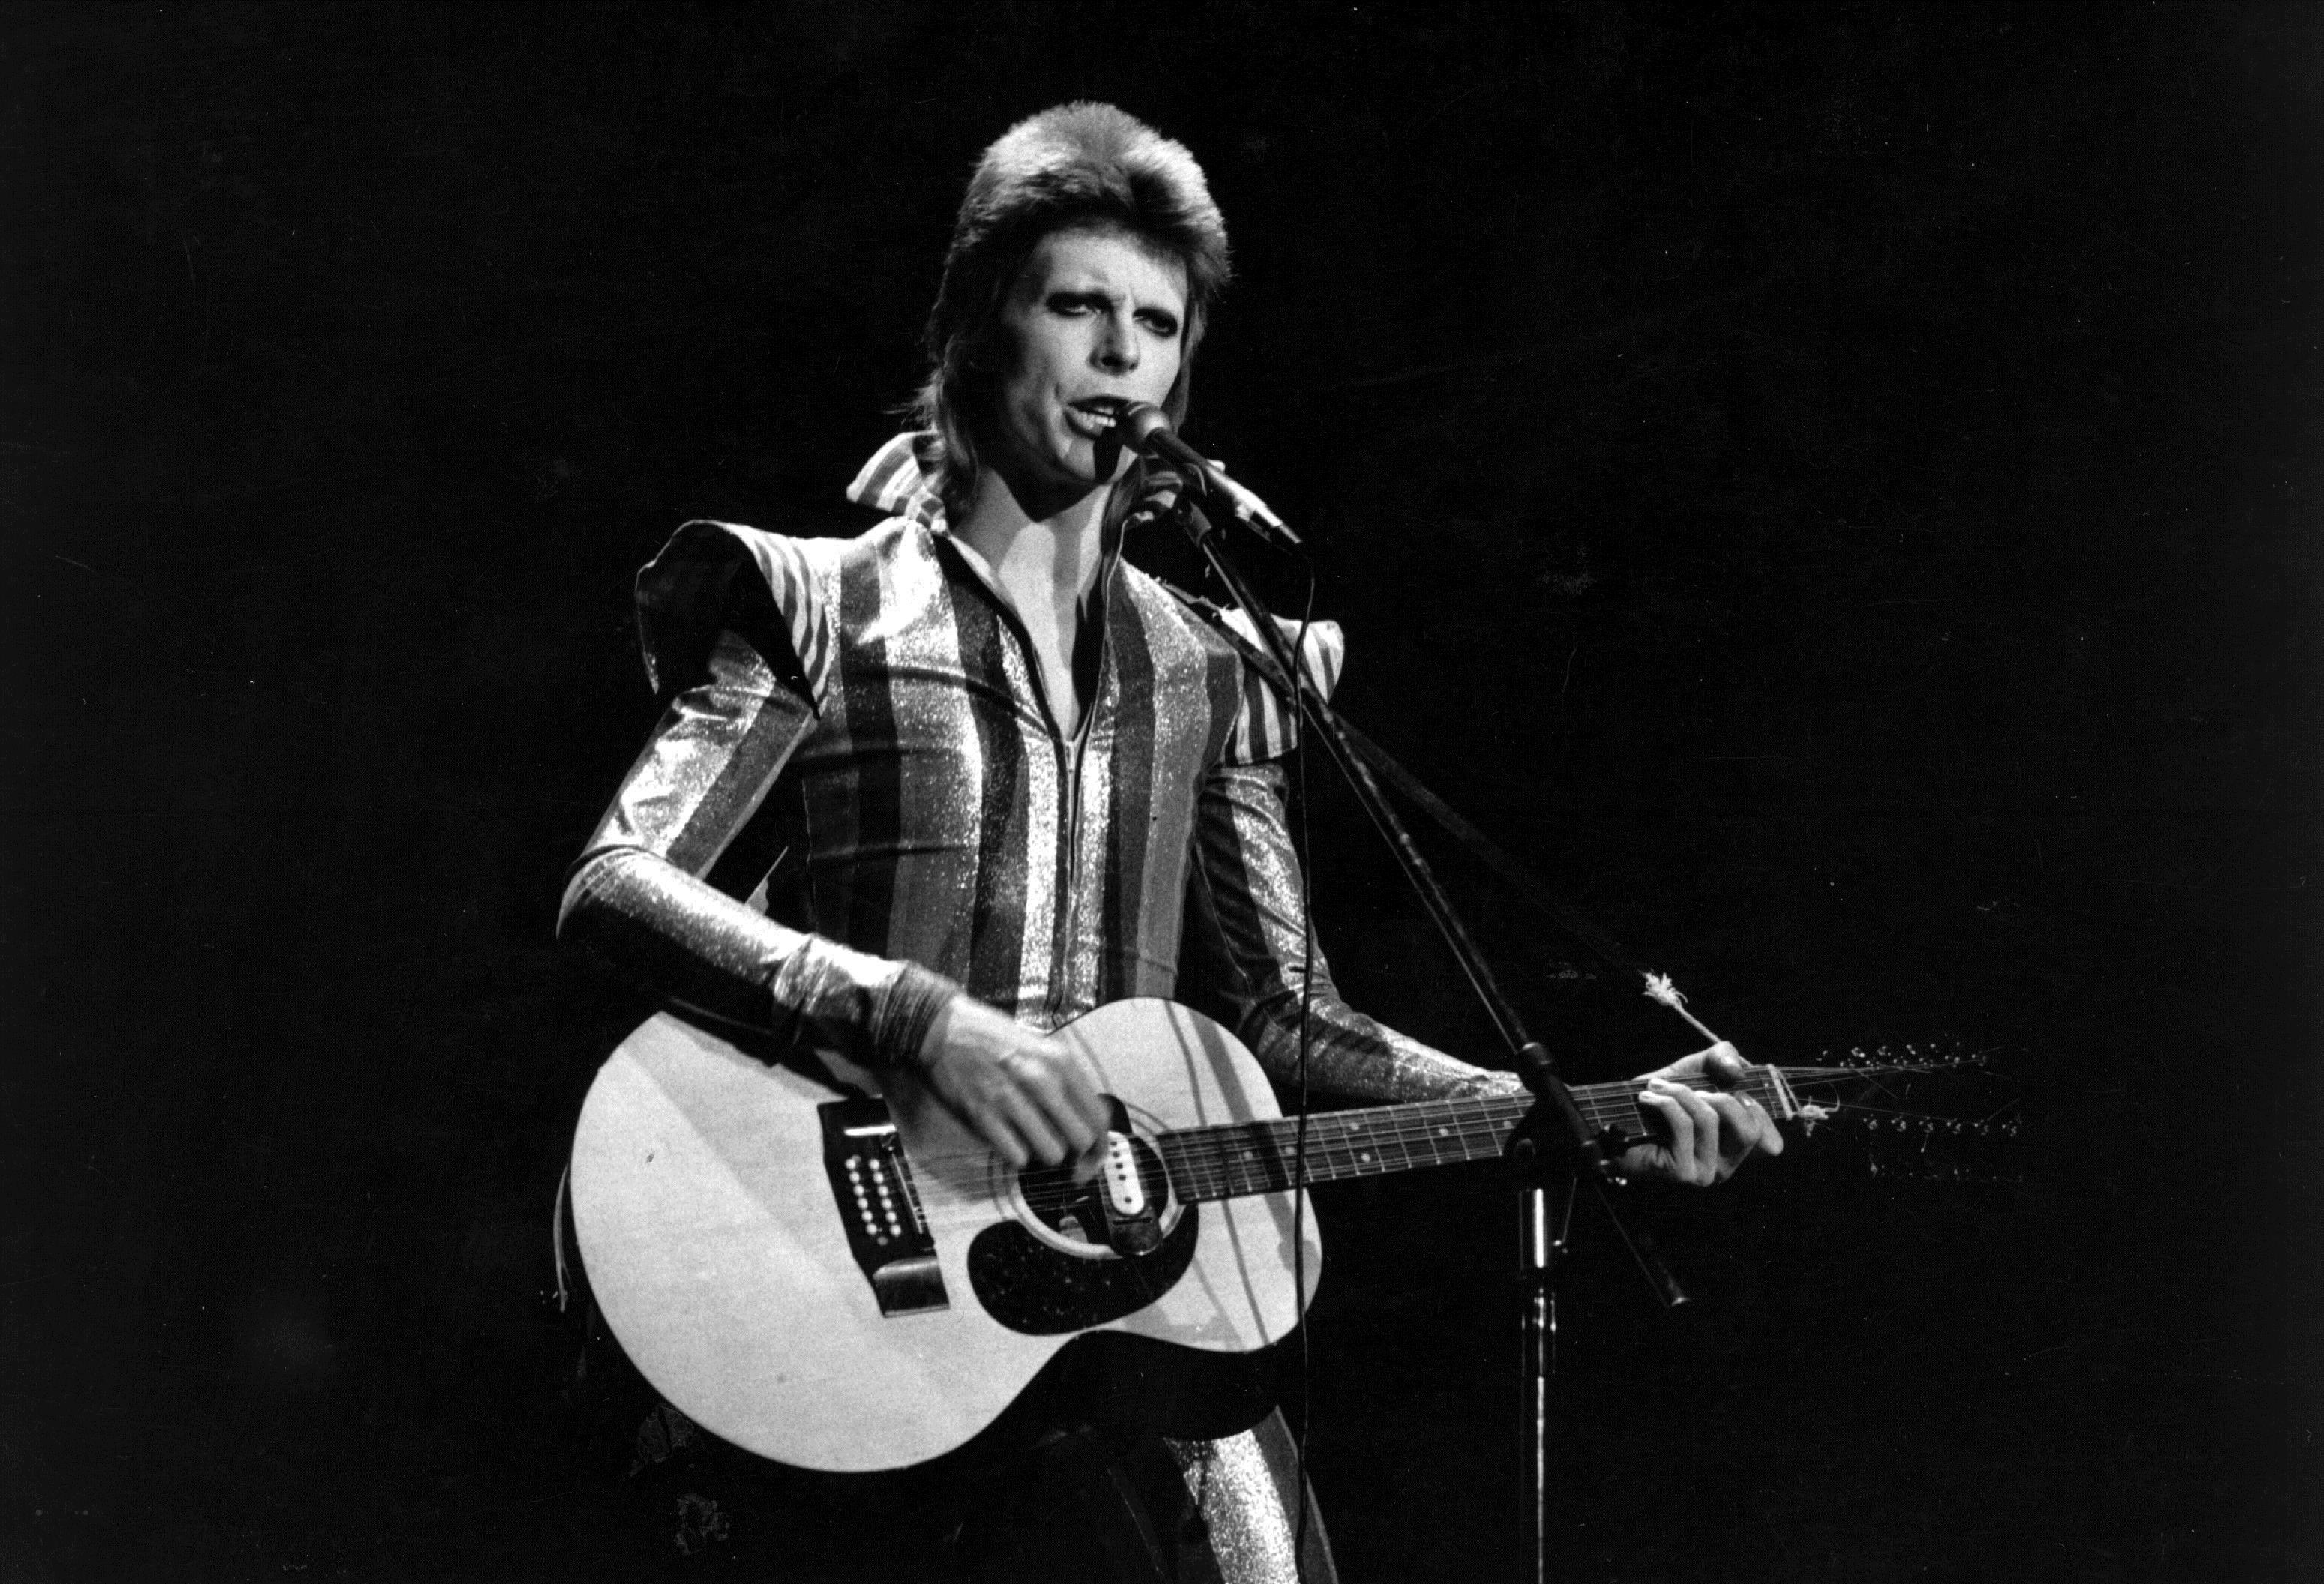 David Bowie played a famous gig at the Caird Hall in 1973.